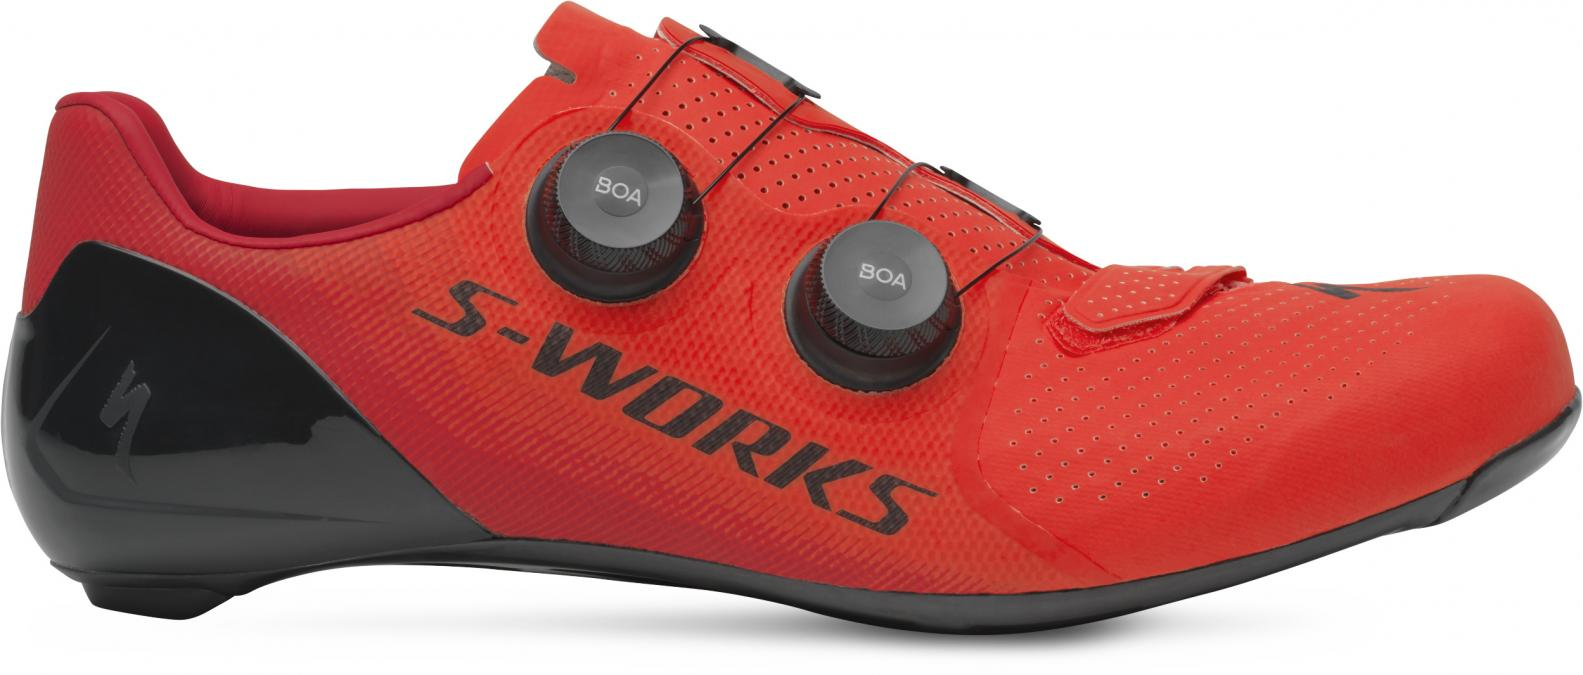 Shoes S Works